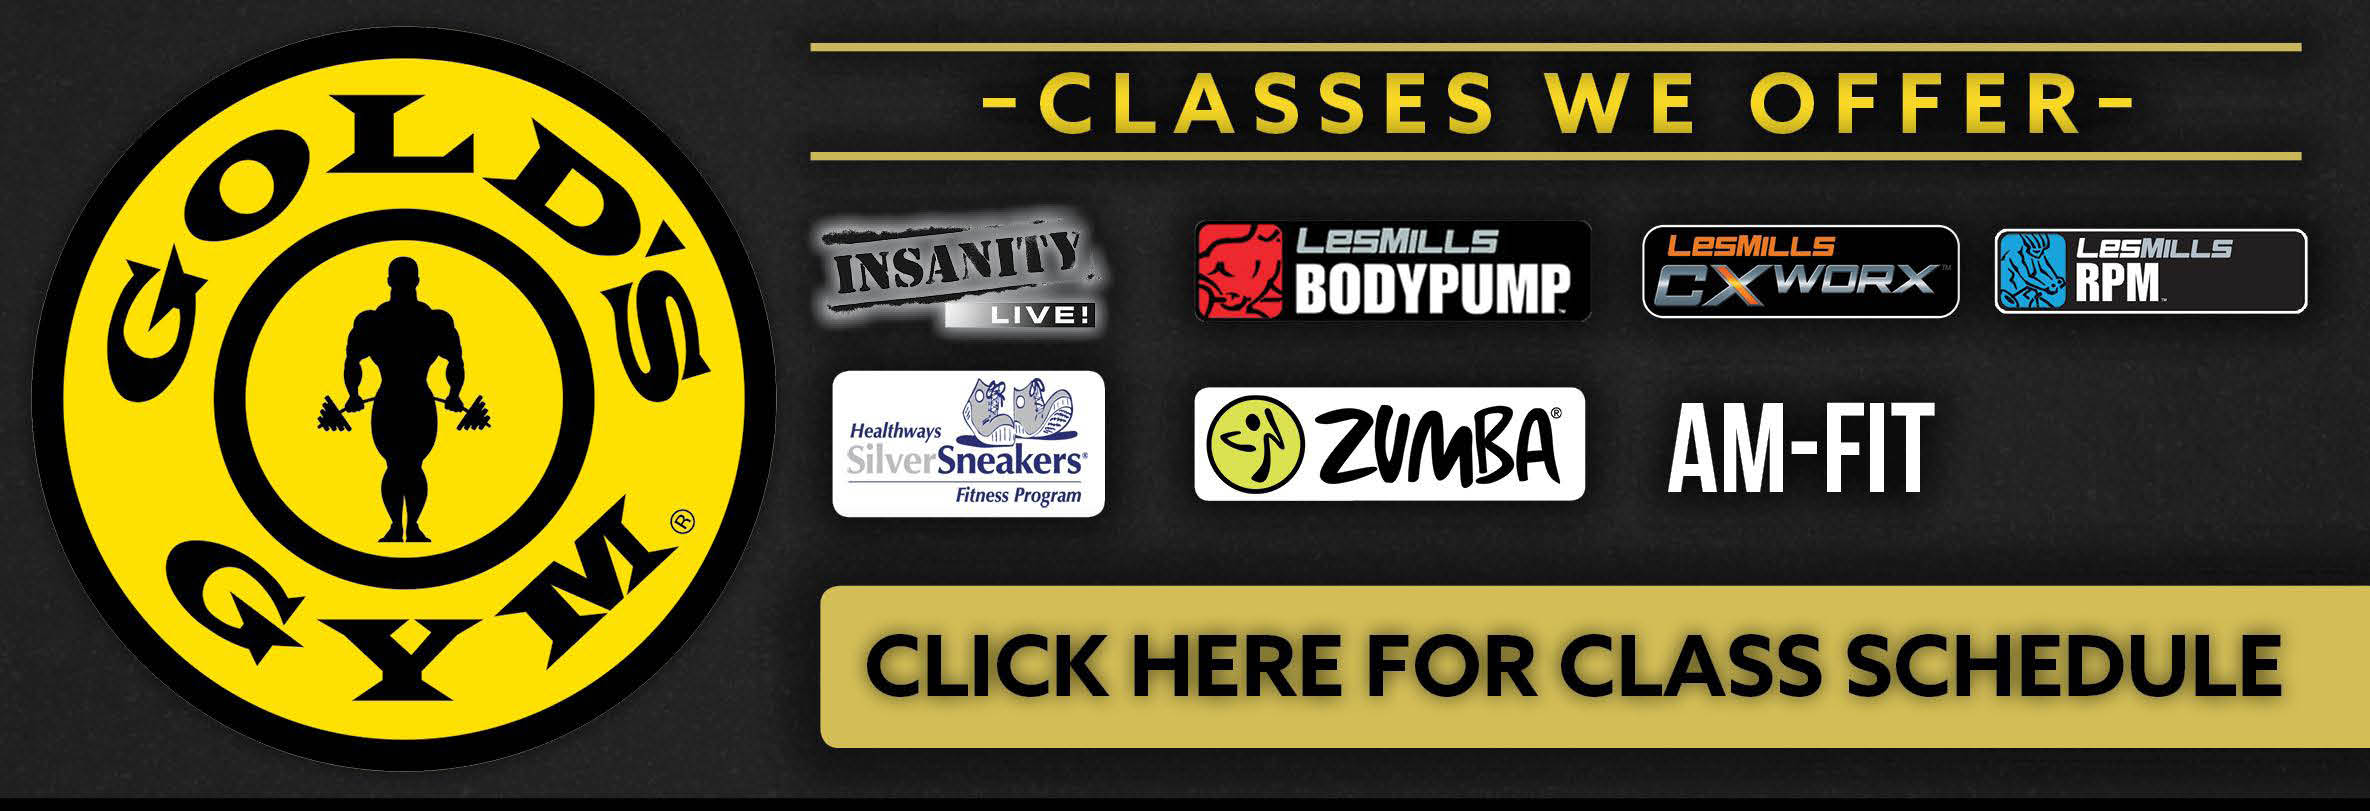 Gym, Fitness, Health, Work Out, Yoga, Cardio, Zumba, Training, Energy, Excercise